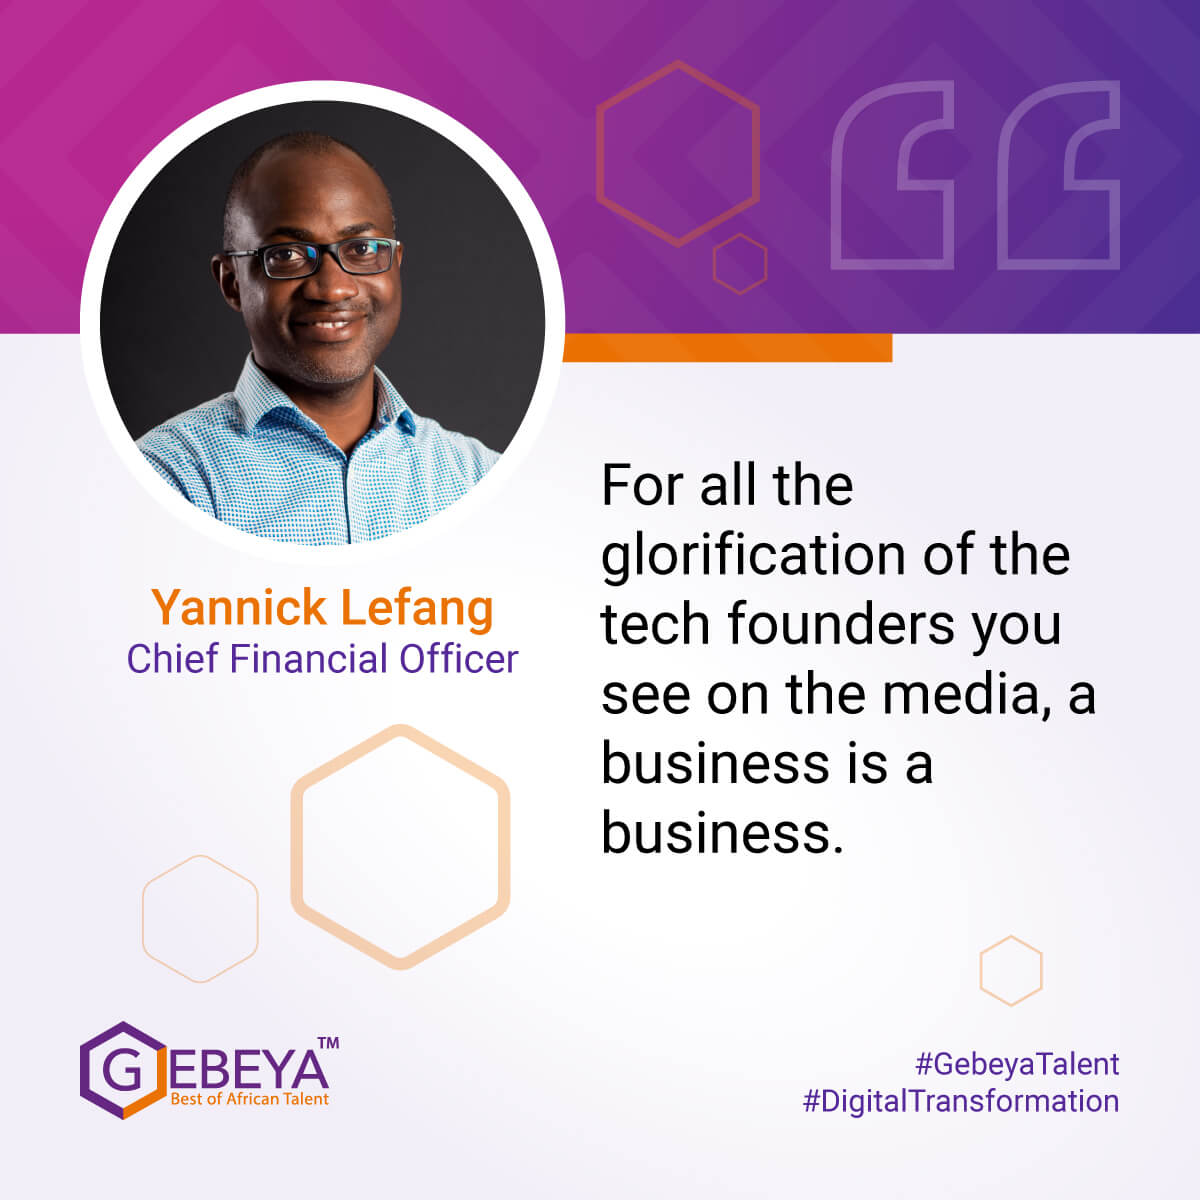 Yannick Lefang, Chief Financial Officer, Gebeya